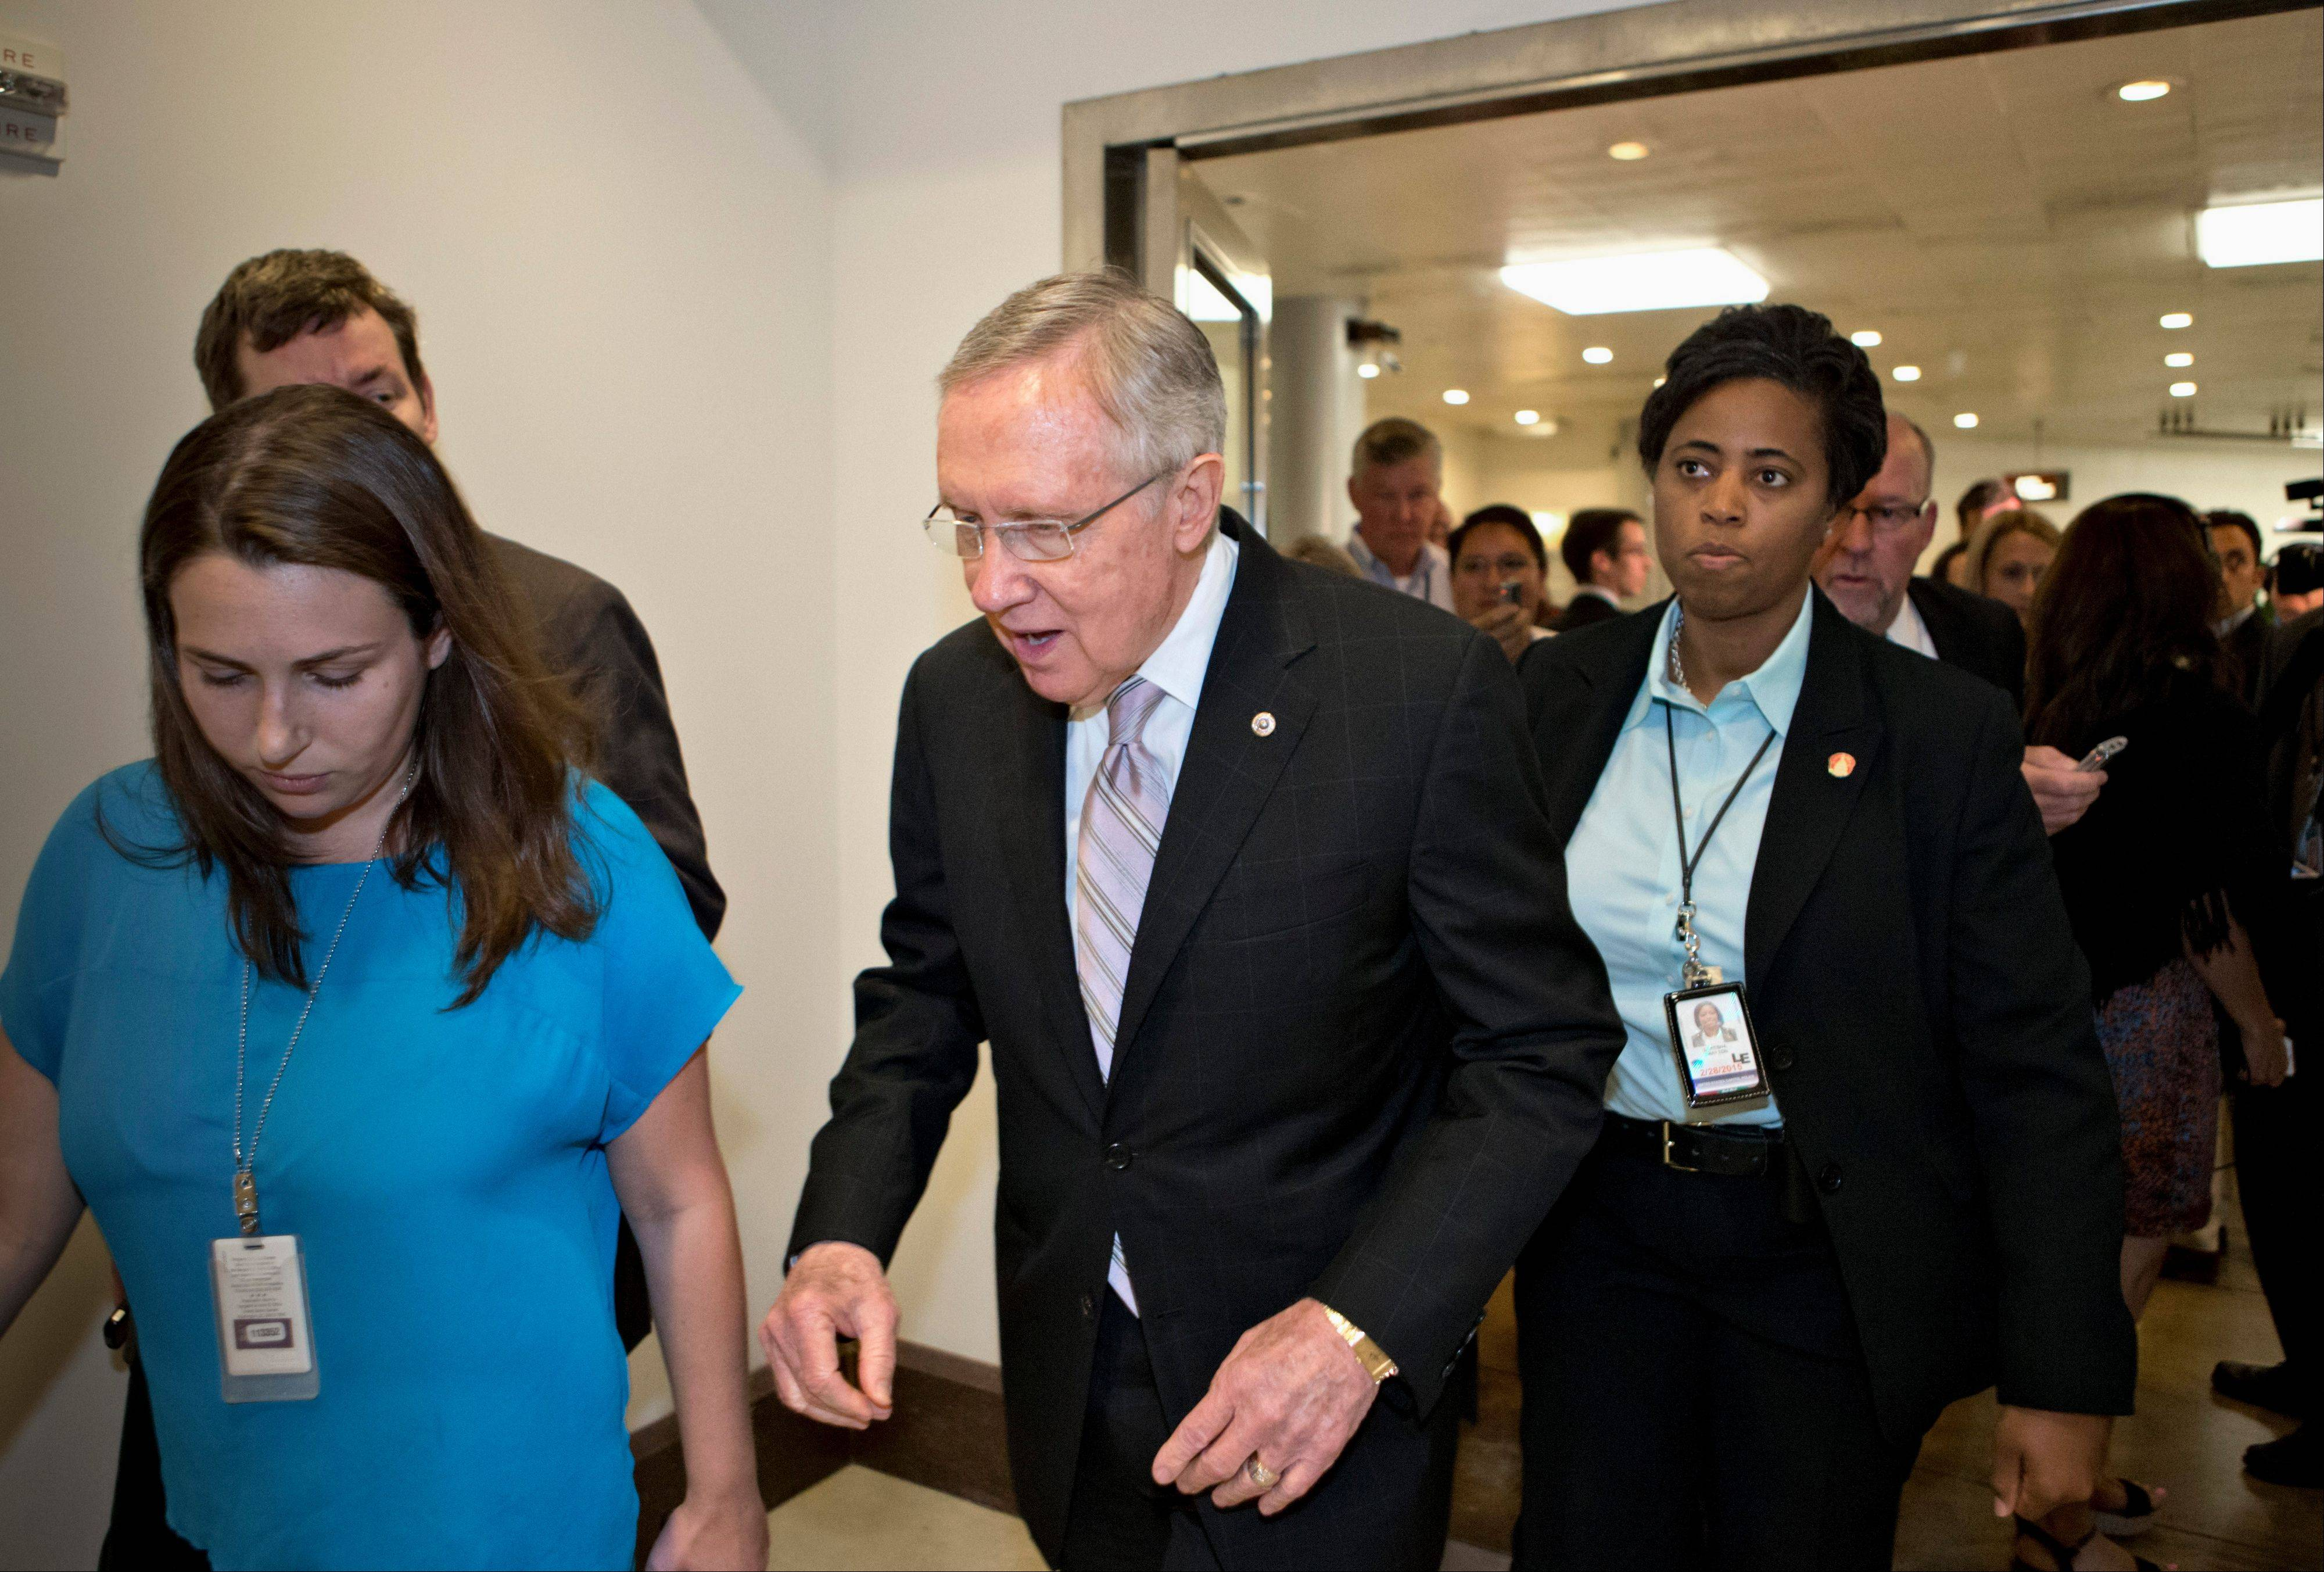 Senate Majority Leader Harry Reid of Nevada walks Friday to a closed-door briefing by national security officials on the situation in Syria on Capitol Hill in Washington.